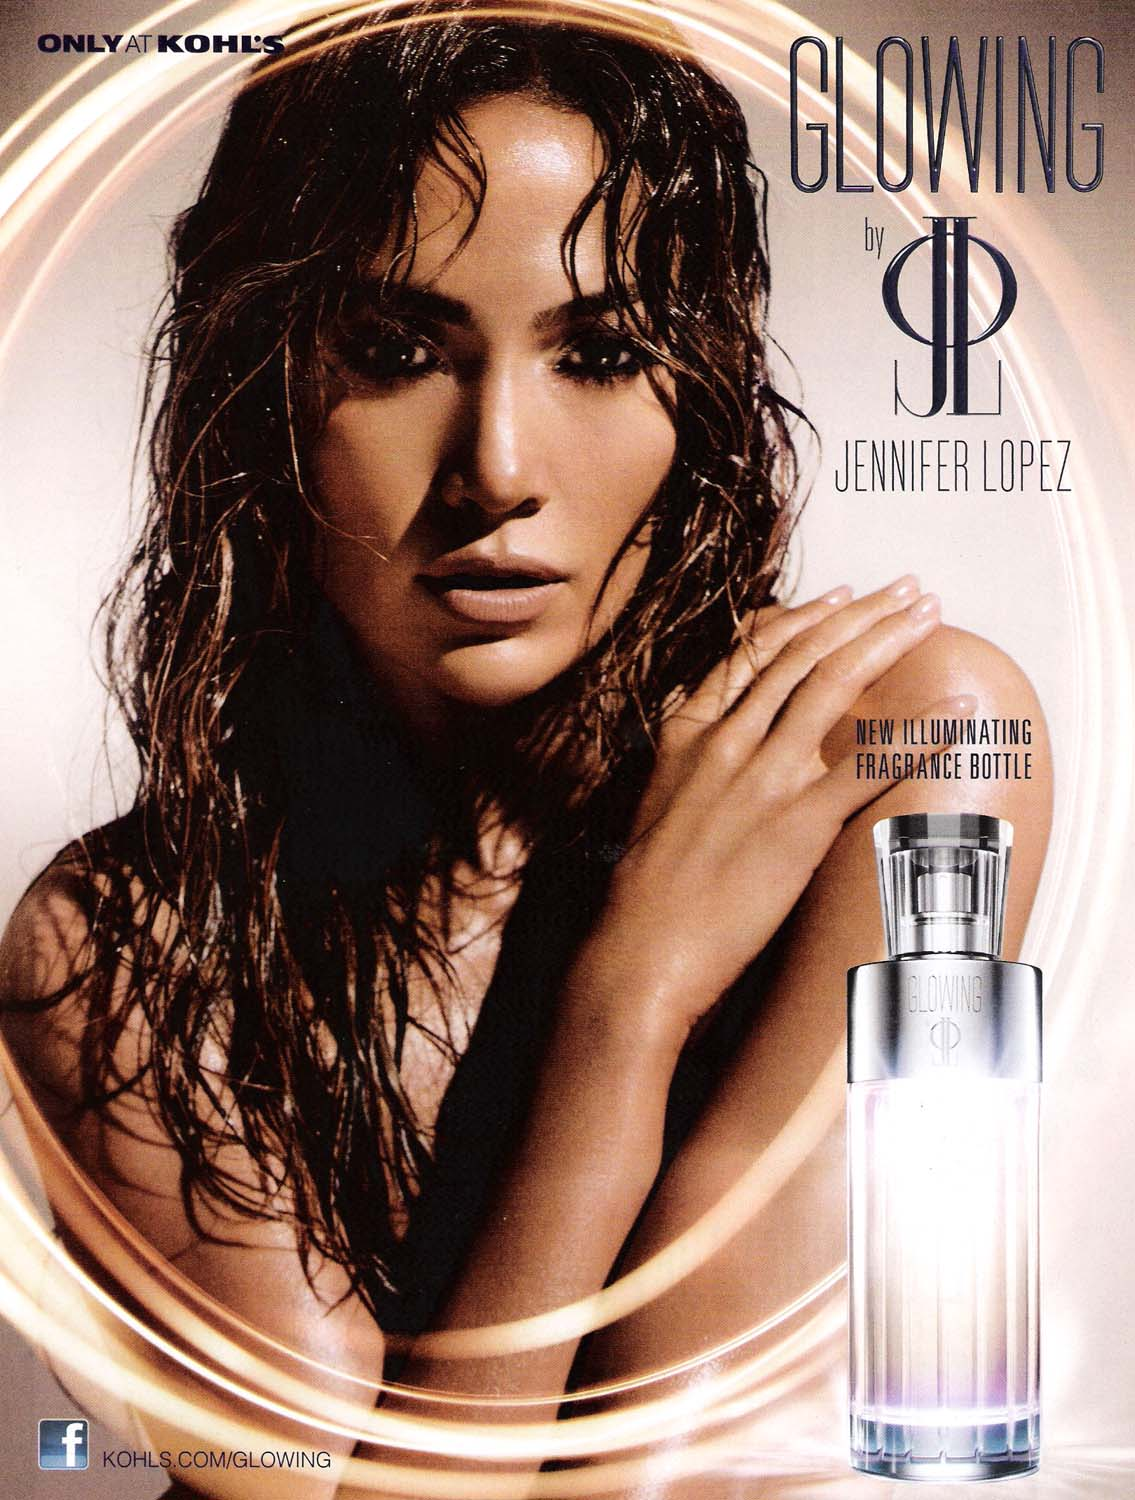 the perfume girl jennifer lopez launches glowing by jlo. Black Bedroom Furniture Sets. Home Design Ideas